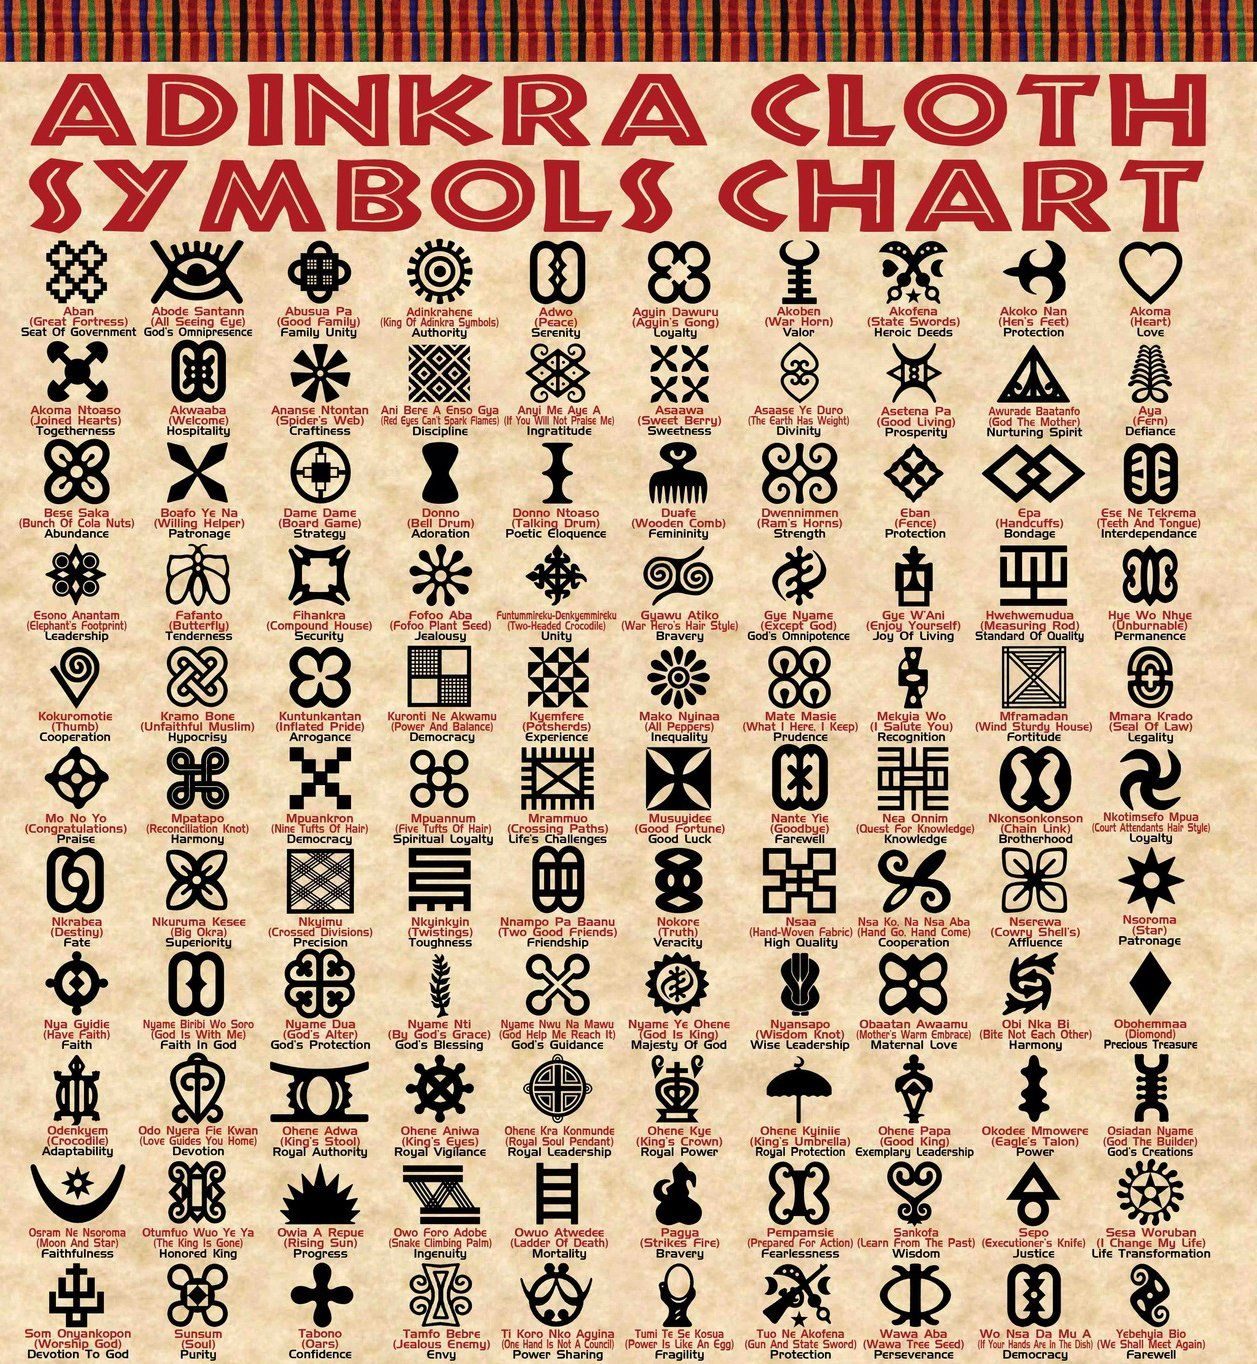 adinkra symbols and their meanings google search